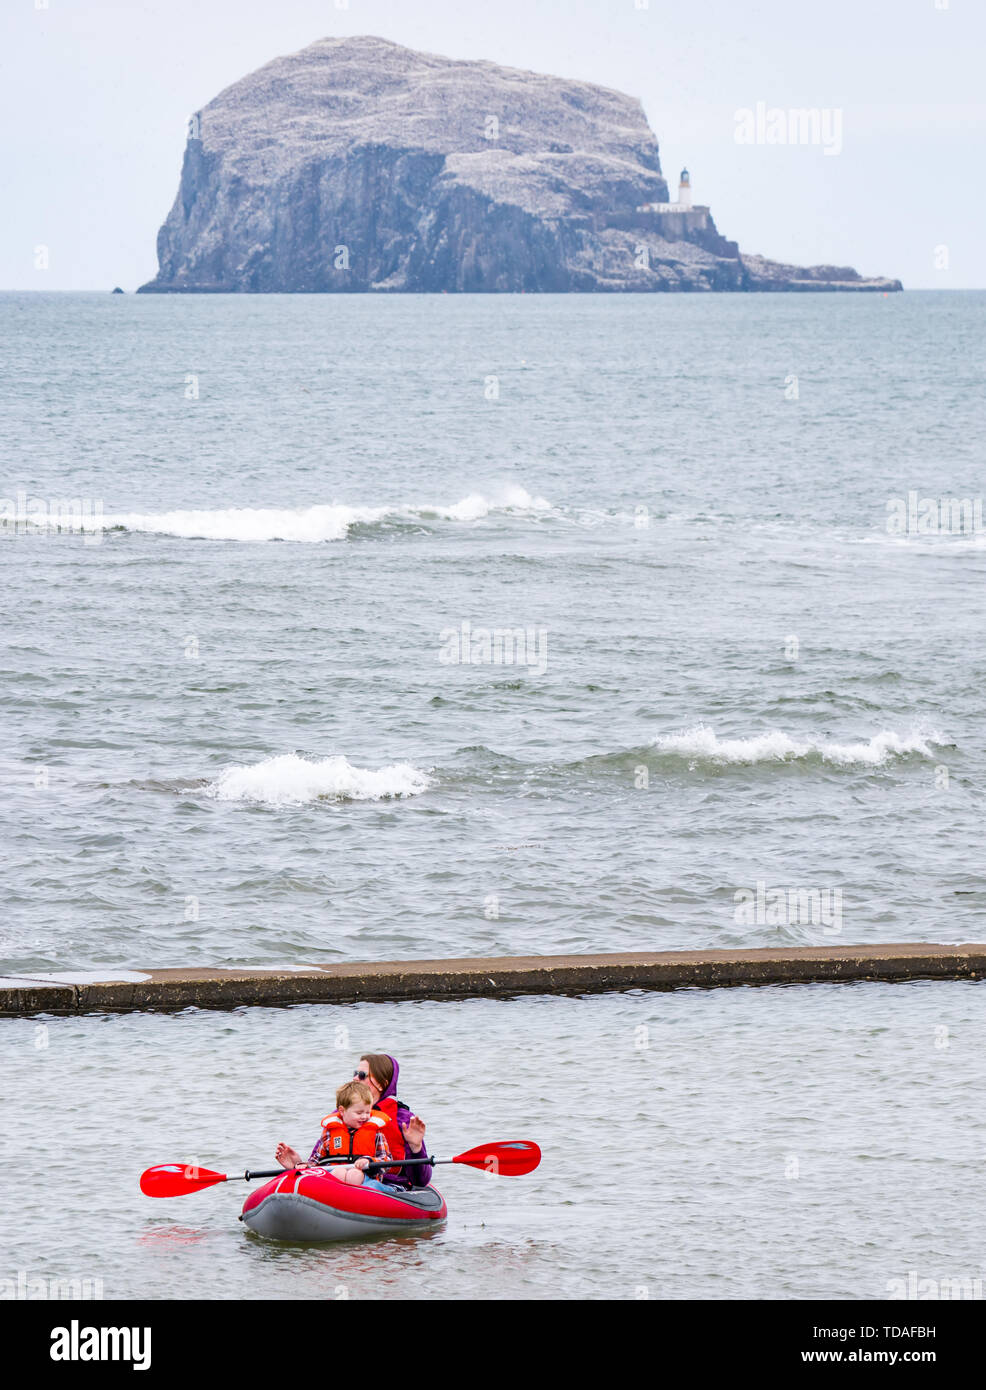 North Berwick, East Lothian, Scotland, United Kingdom, 14th June 2019. UK Weather: After East Lothian suffered heavy rain the last few days, the weather has brightened, and people enjoy the outdoor pursuits in the seaside town. A woman and child  ina rubber dinghy in the tidal bathing pool at Milsey Bay with the Bass Rock colony on the horizon. Credit: Sally Anderson/Alamy Live News - Stock Image